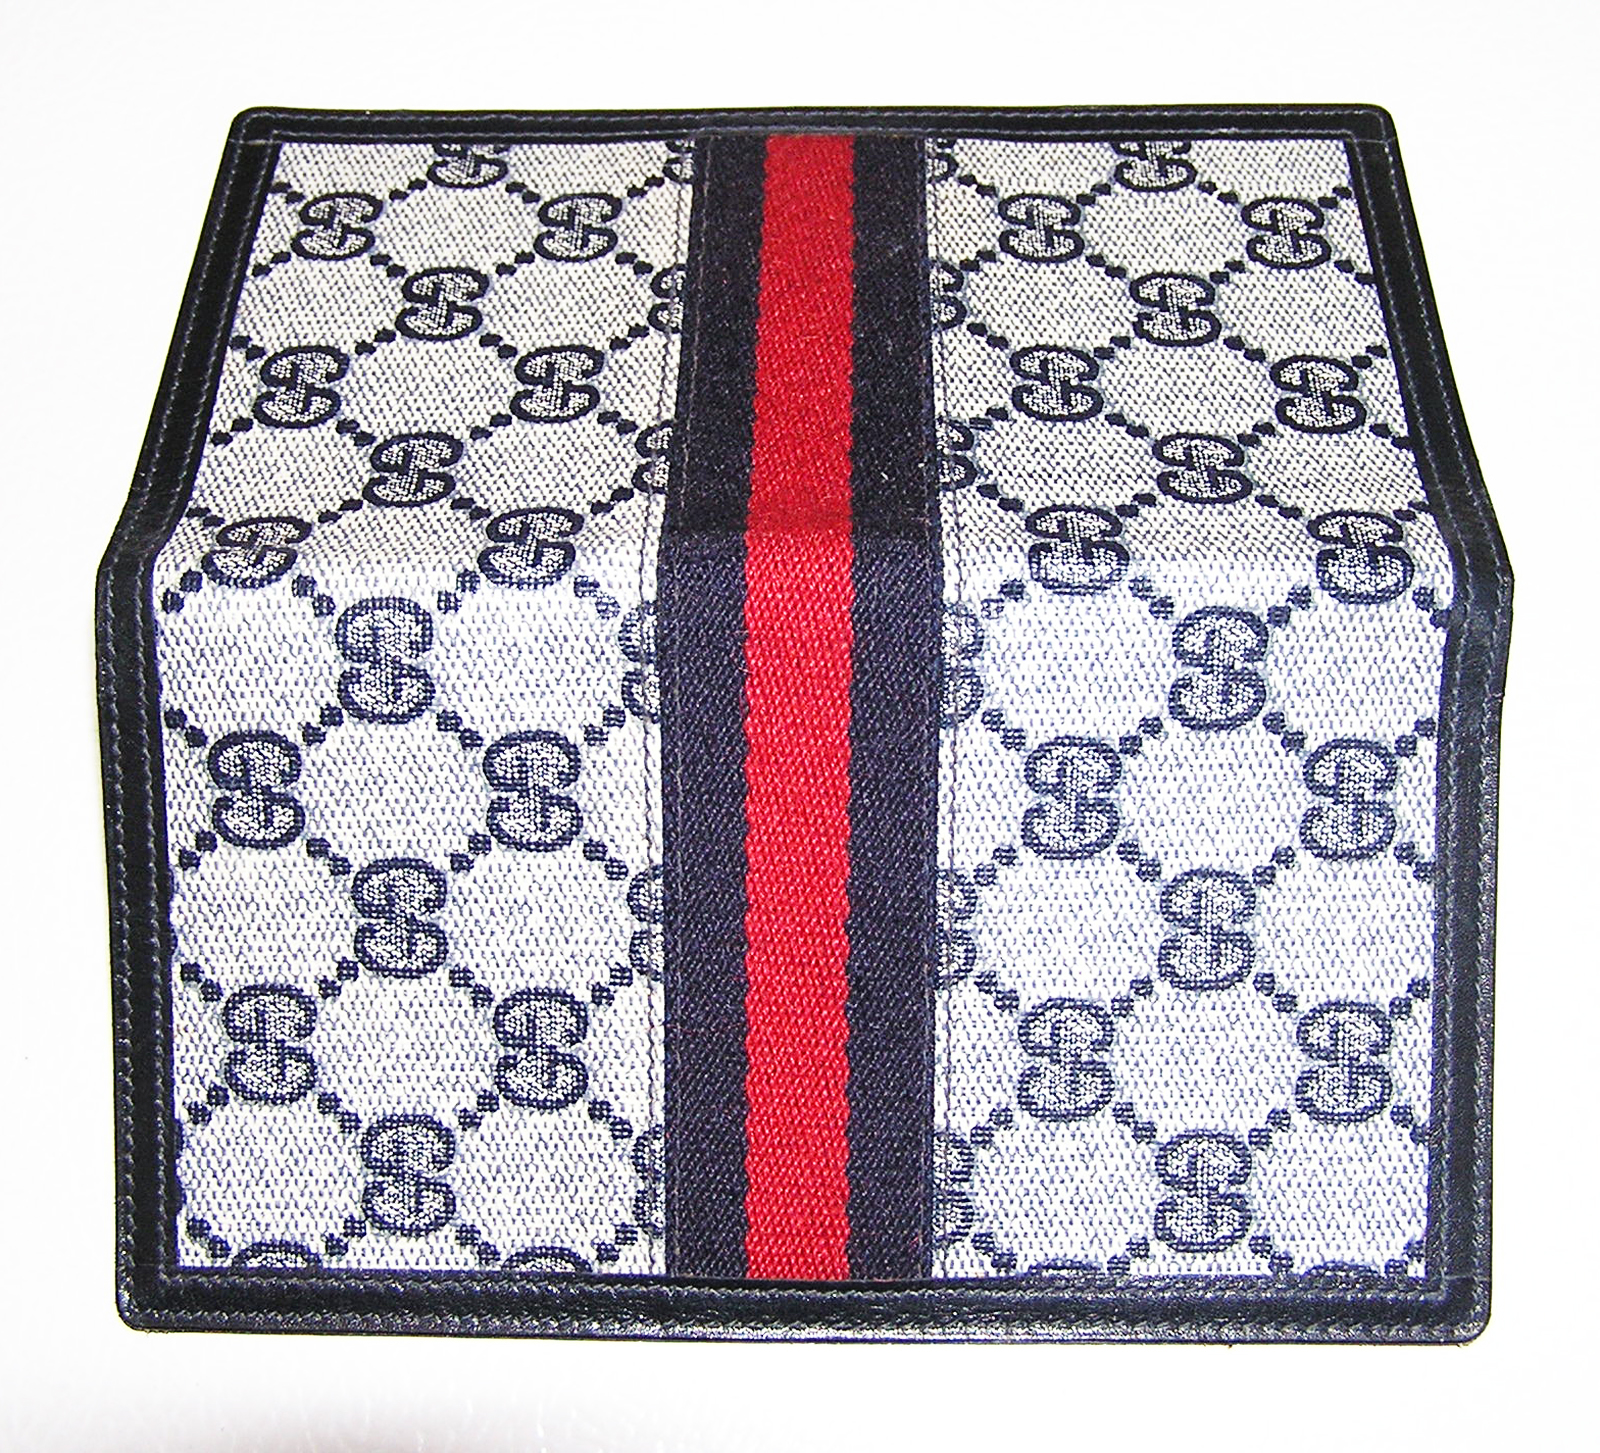 cff2e48ec3421a Is this Gucci checkbook cover authentic? - The eBay Community